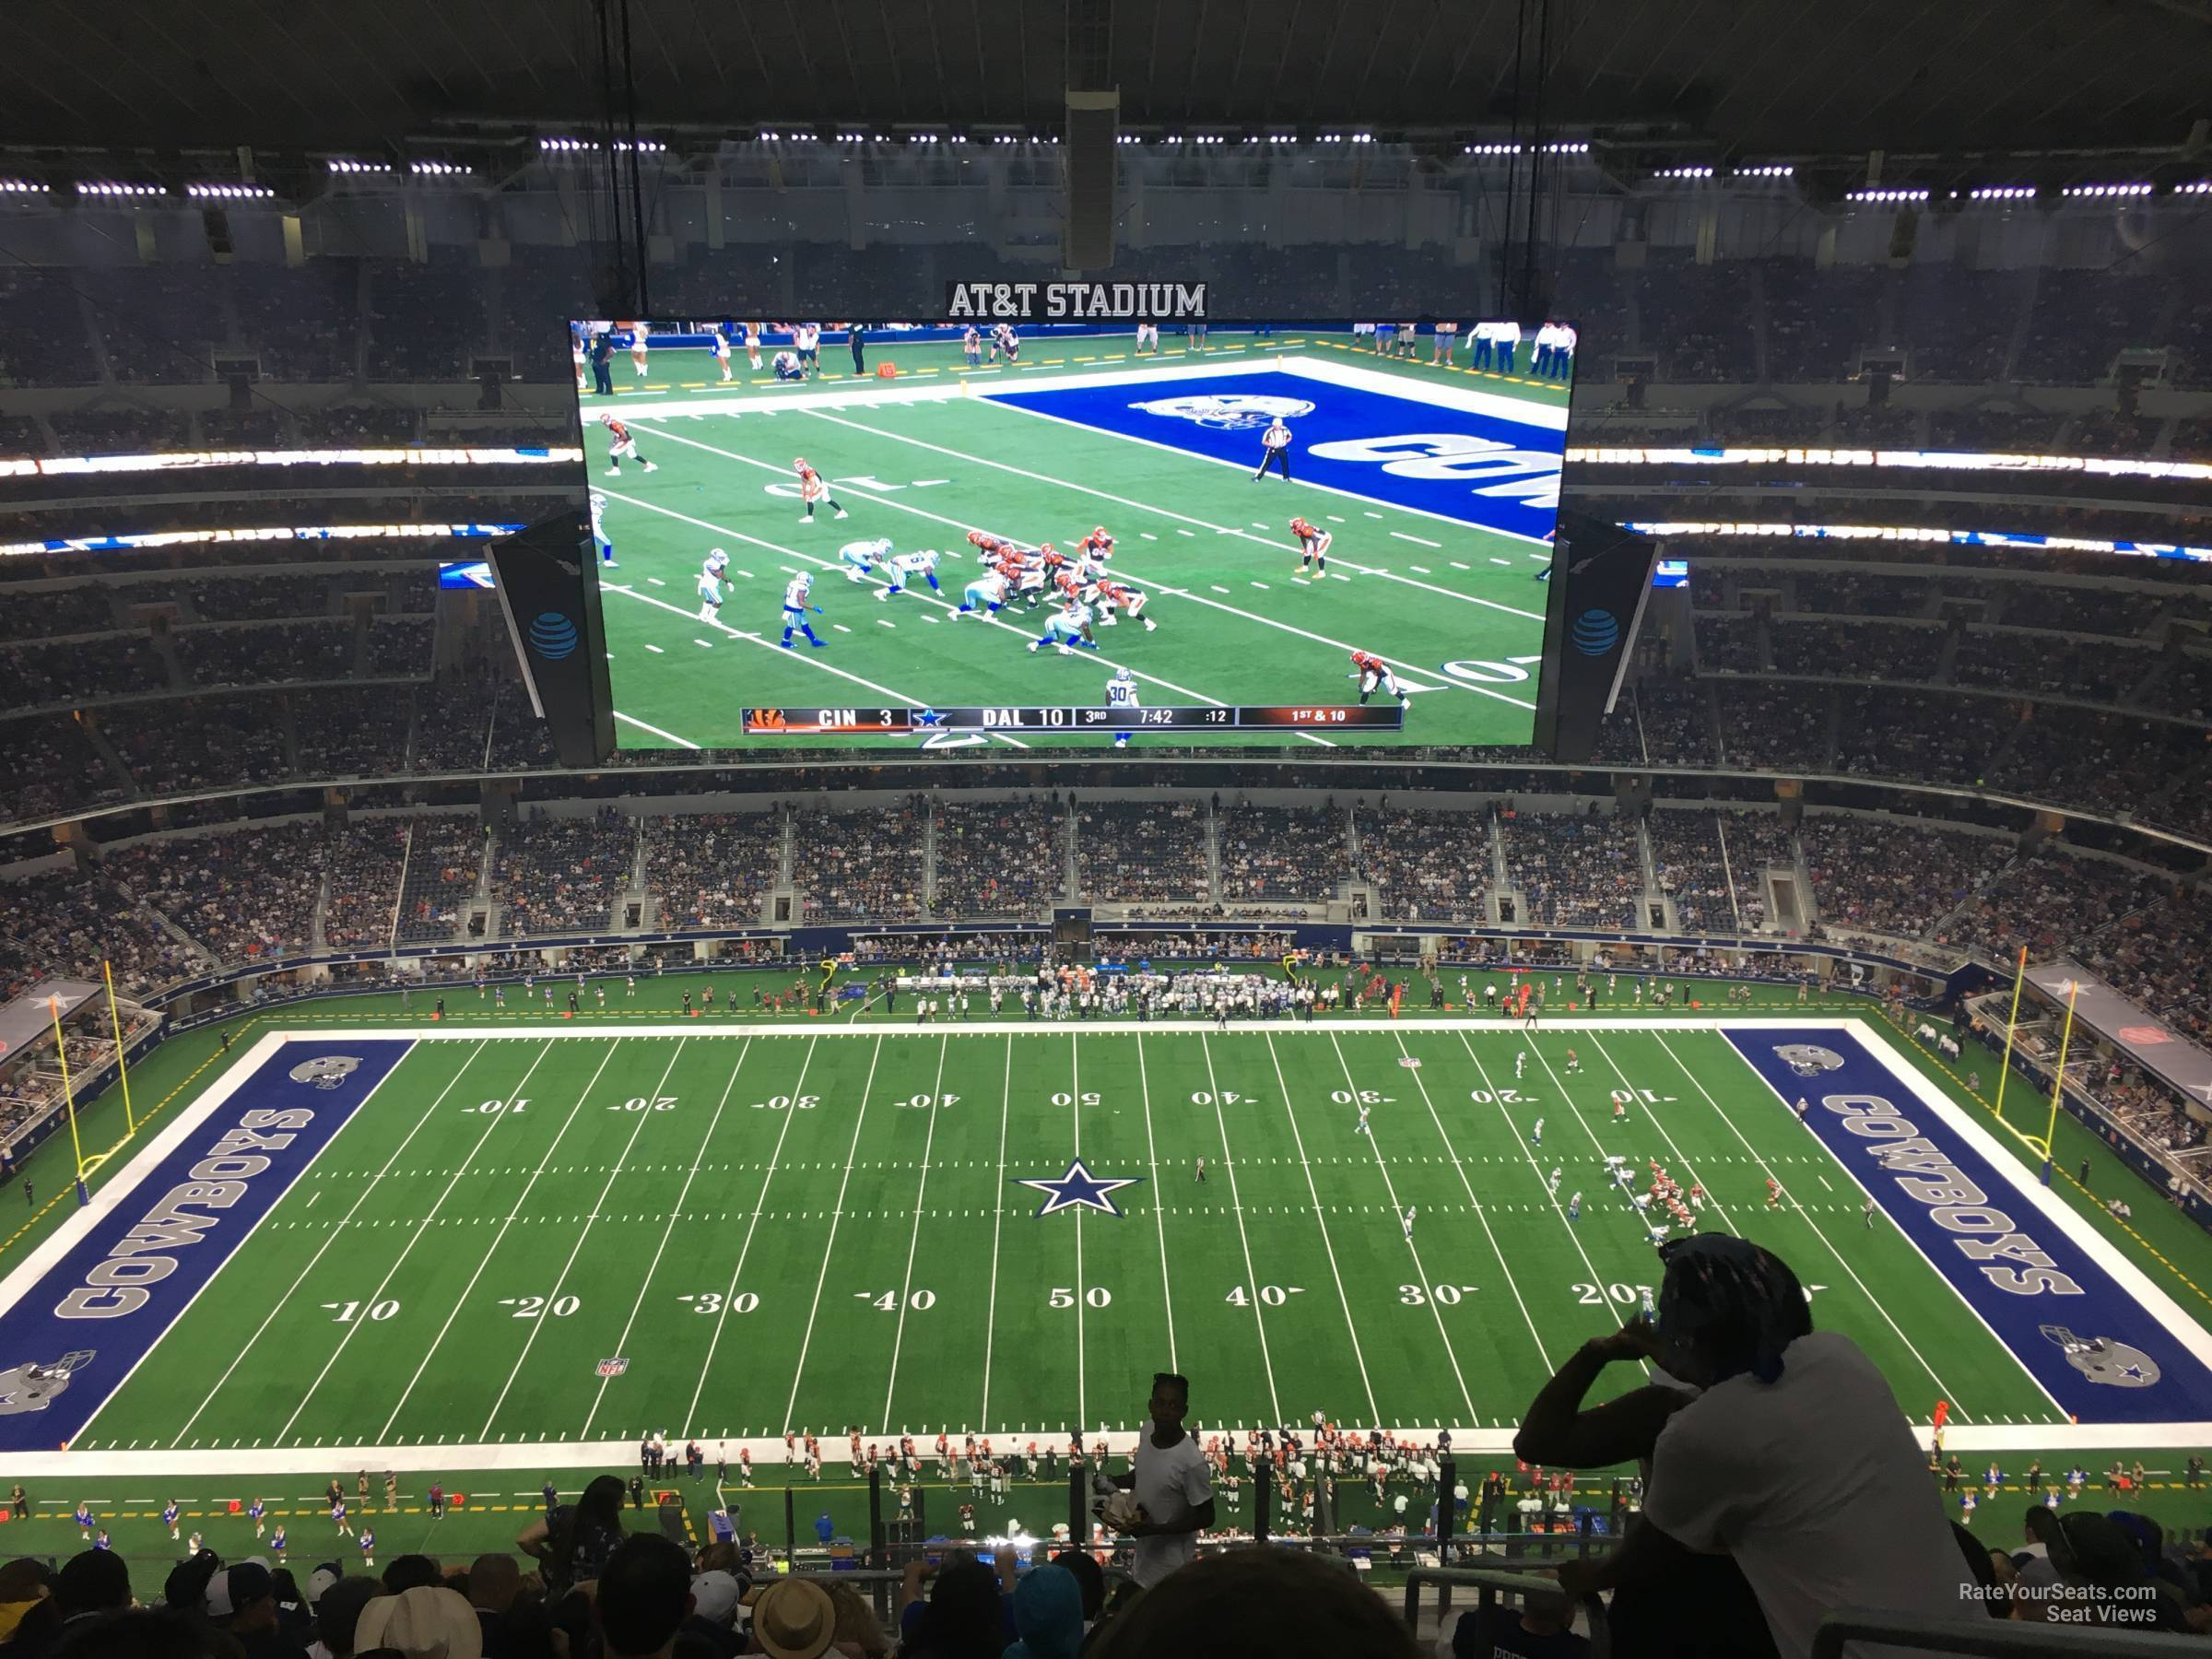 Section 444 seat view